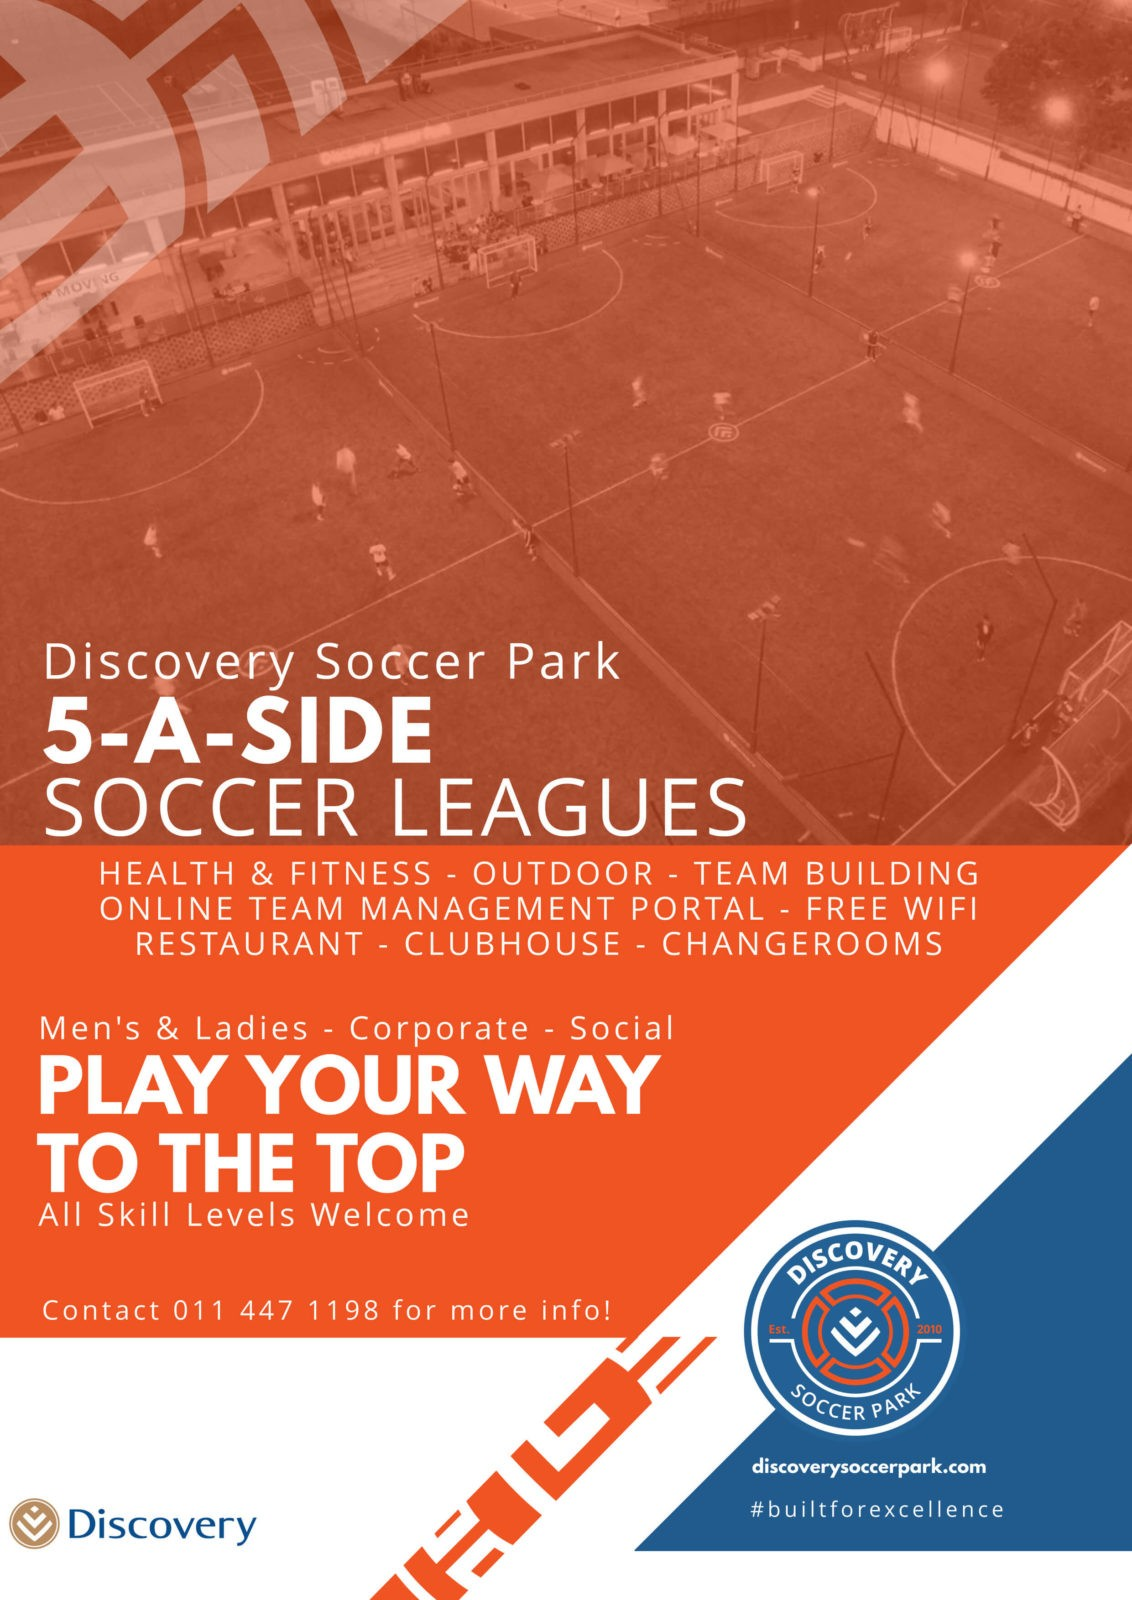 wanderers club Discovery Soccer Park News, April 2019 3